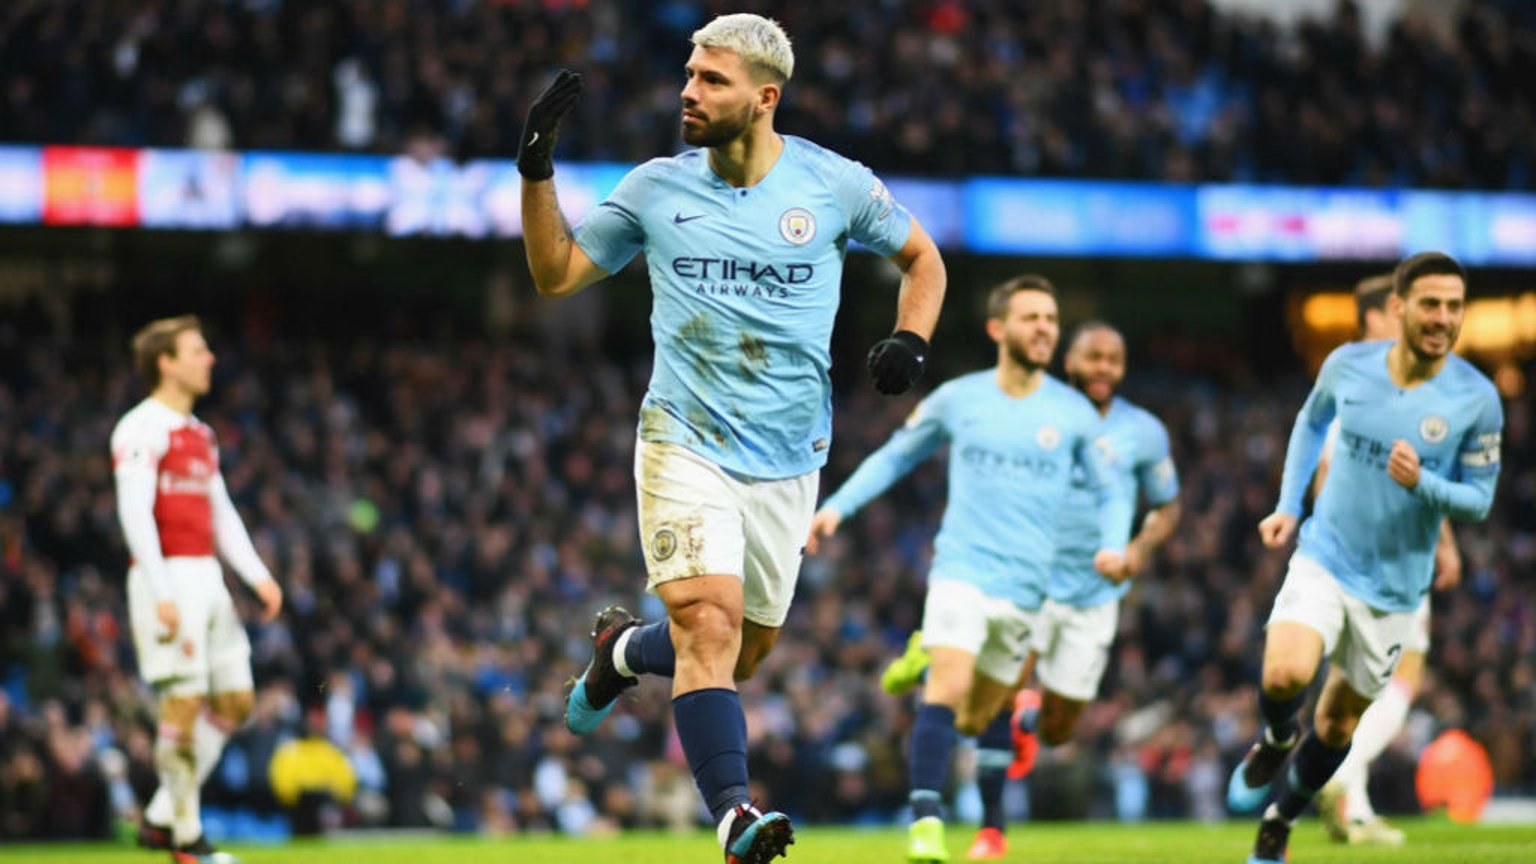 FIRE STARTER: Sergio Aguero heads City into the lead after just 50 seconds.